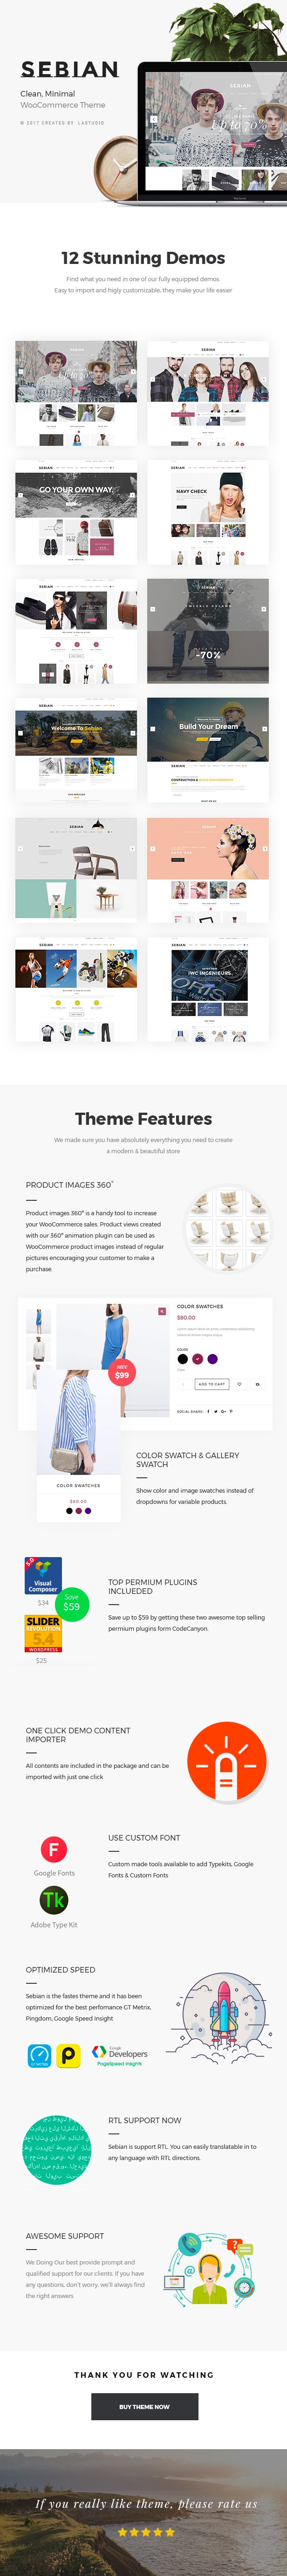 Sebian - Multi-purpose WordPress WooCommerce Theme - 1